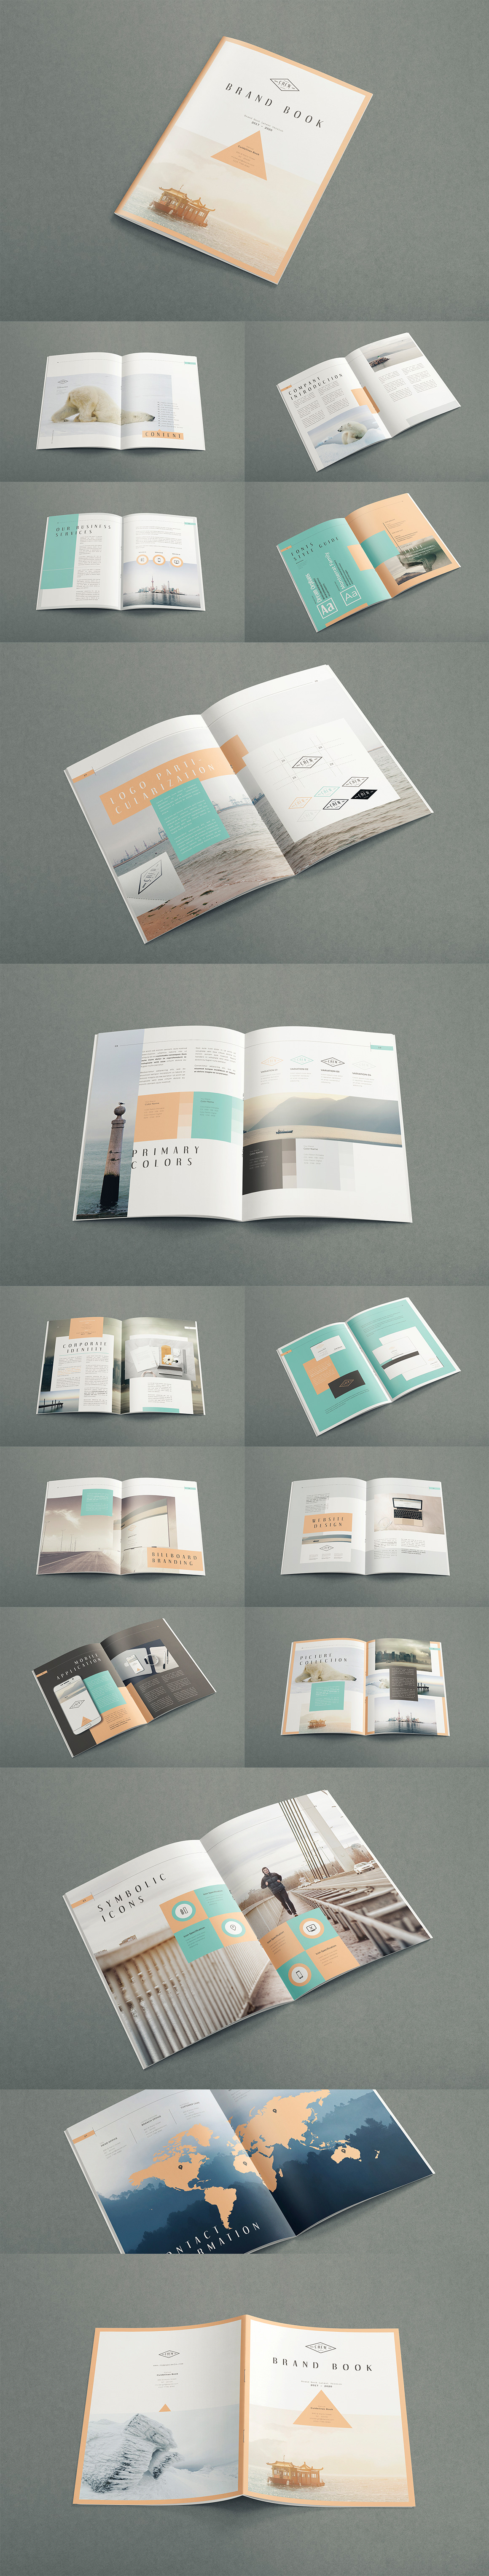 Style Guide & Brand Book Templates-strip17